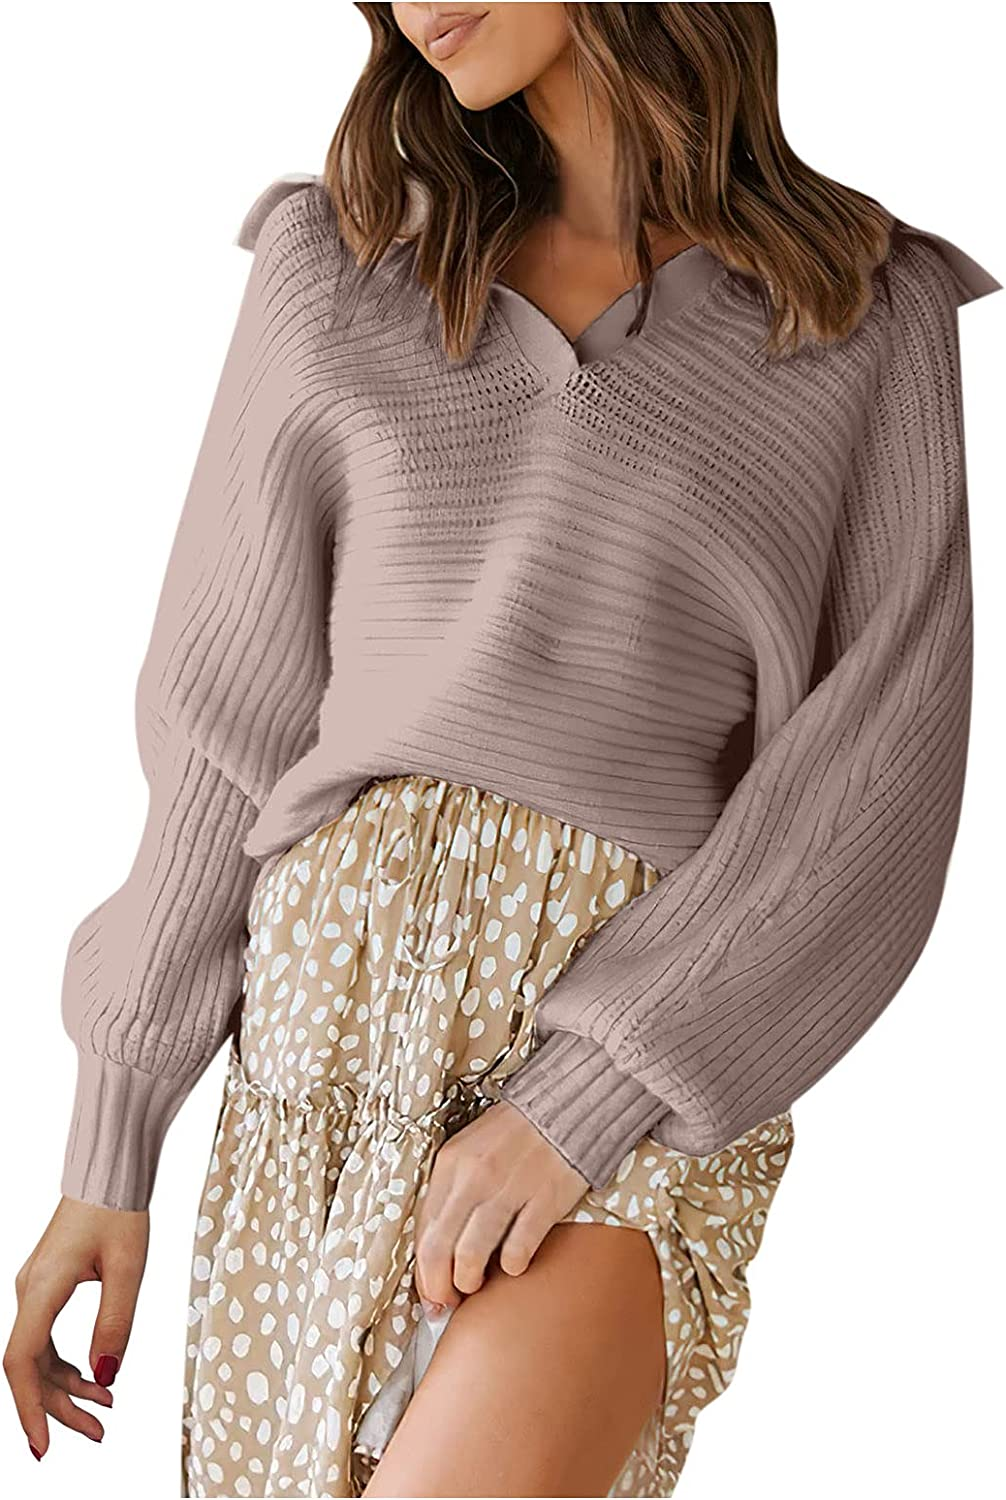 Womens Knit Sweaters V Neck Pullover Long Sleeve Plain Sweater Tops Casual Soft Fall Winter Knitwear Blouse Jumper Tops